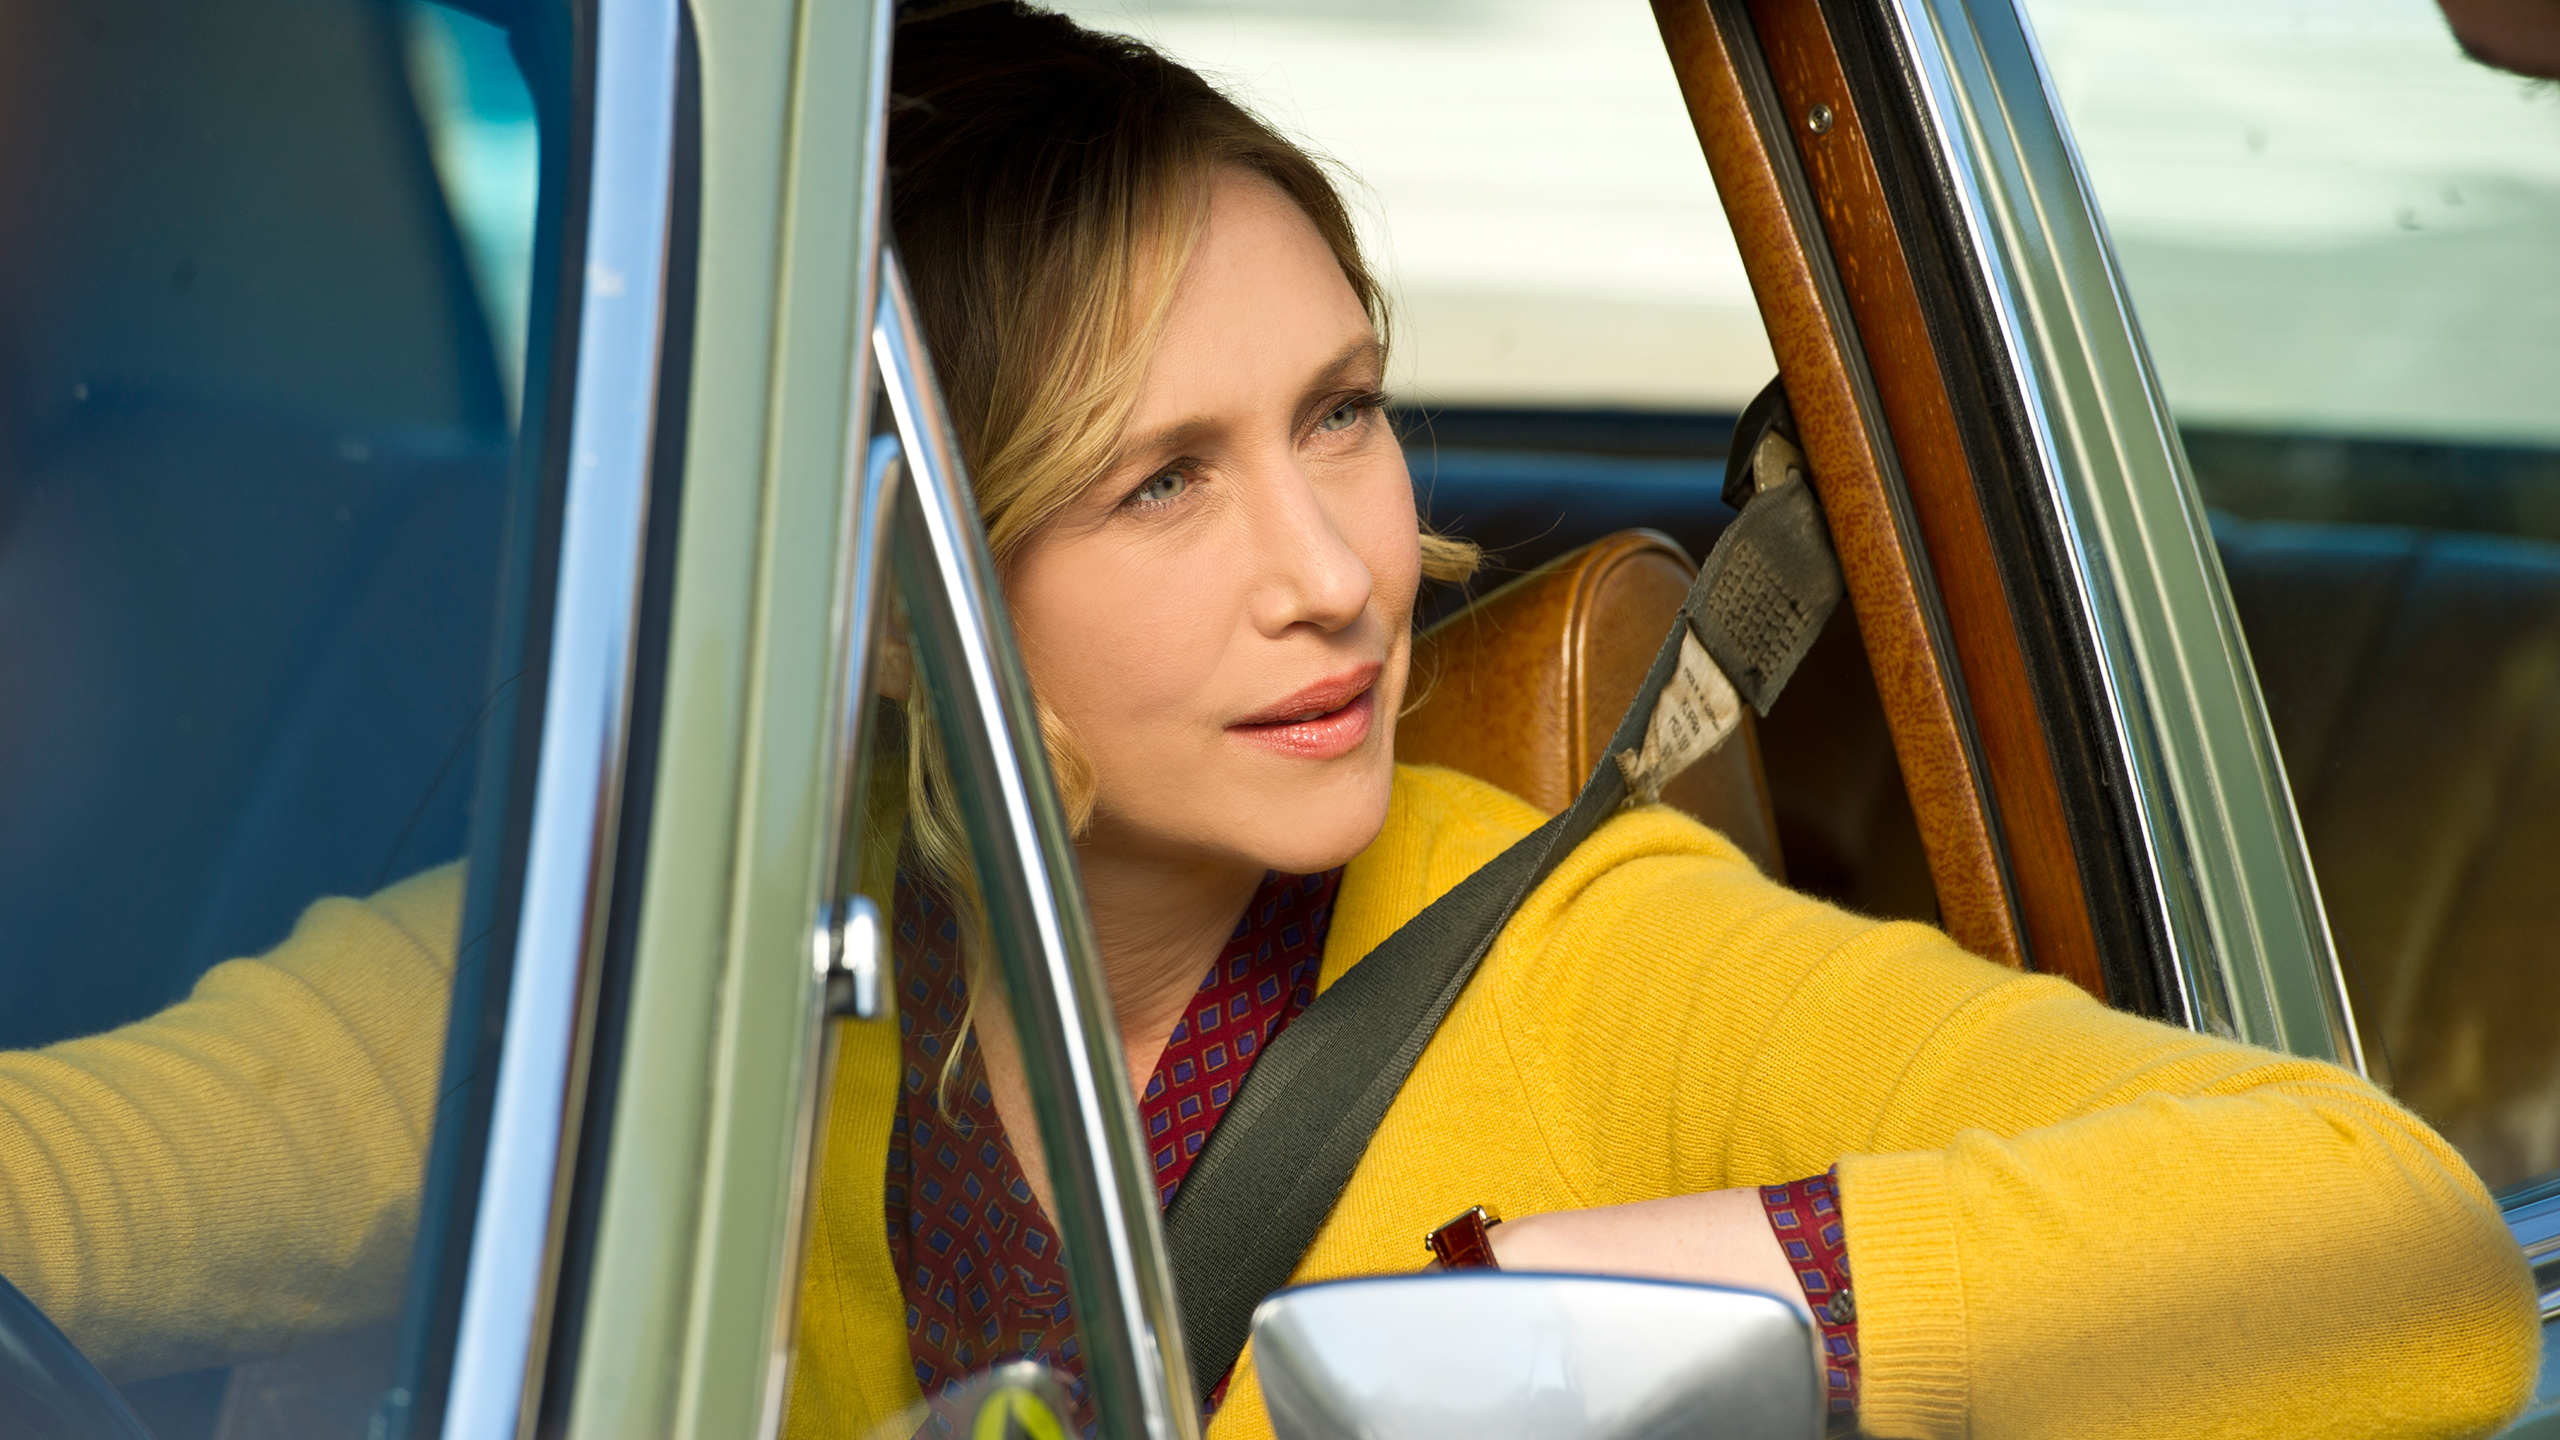 File:13-norma-bates-spots-deputy-shelby-from-her-car.jpg